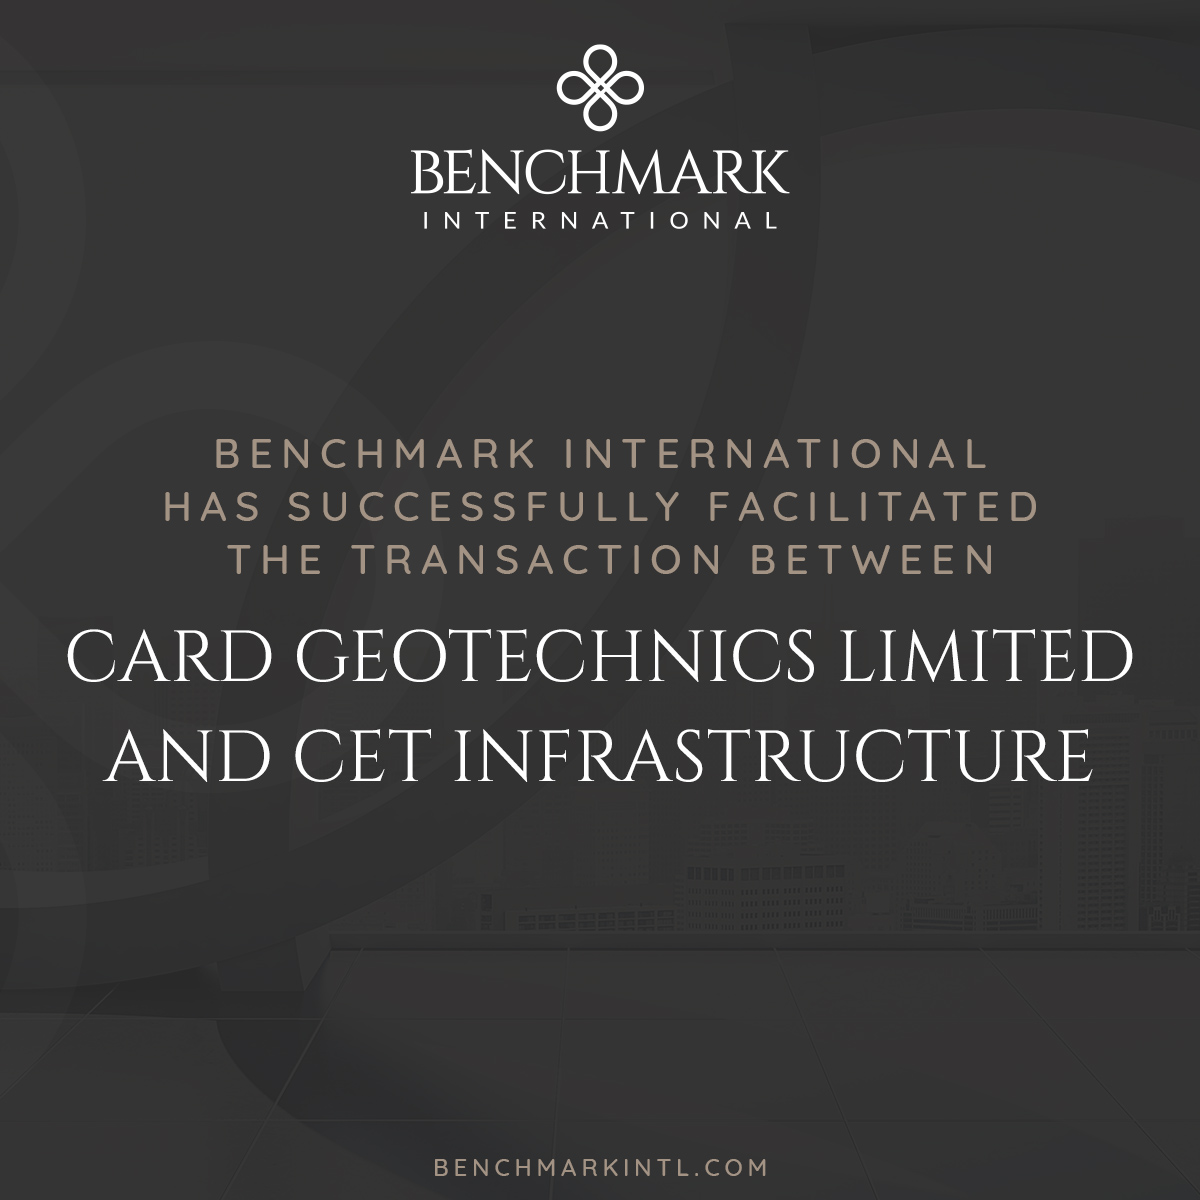 Card_Geotechnics_&_CET_Infrastructure_Social